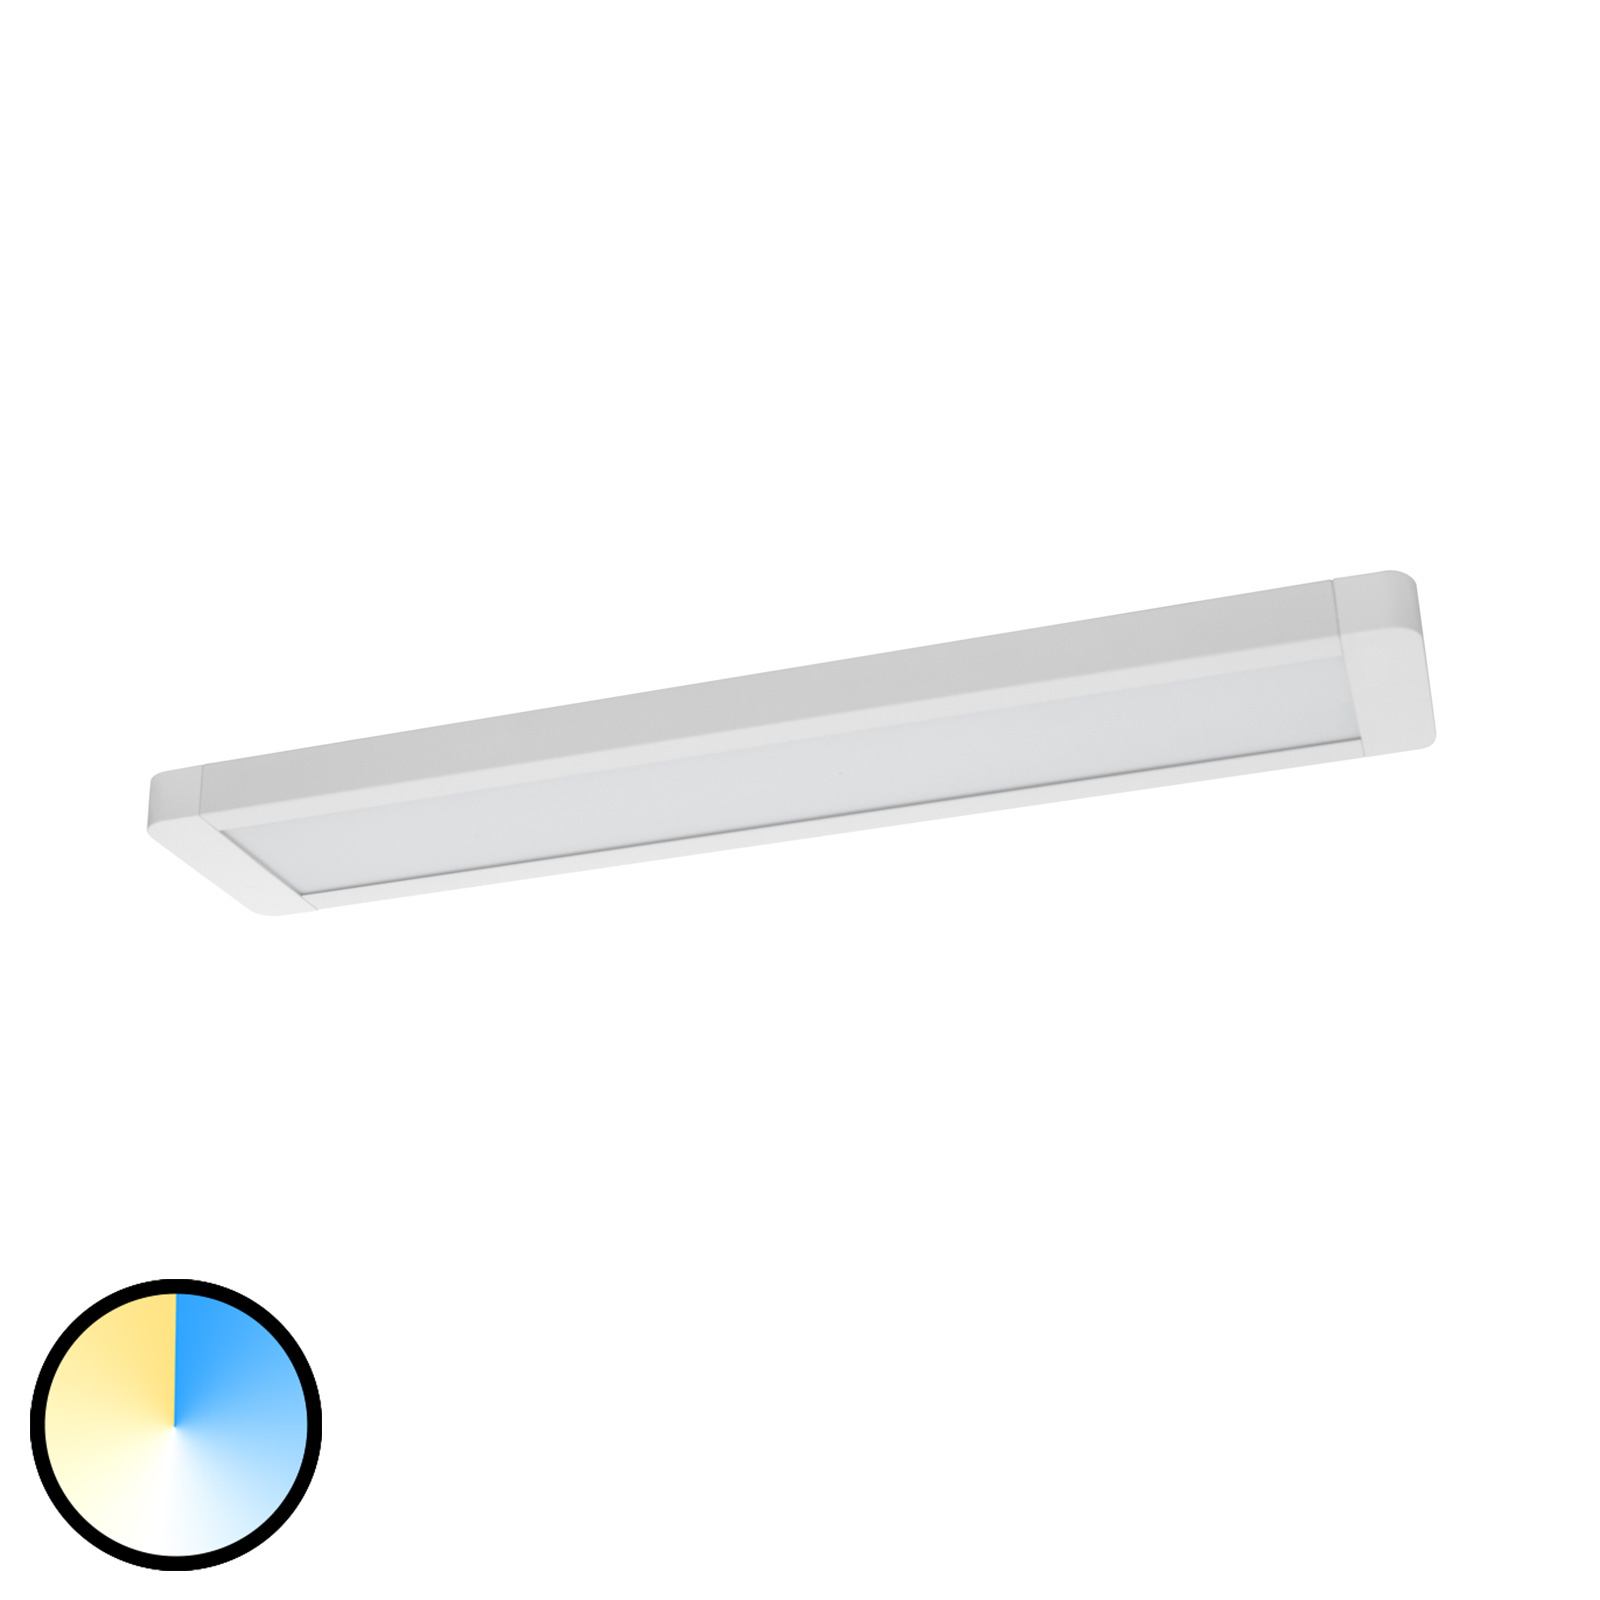 LEDVANCE Office Line LED plafondlamp 60 cm